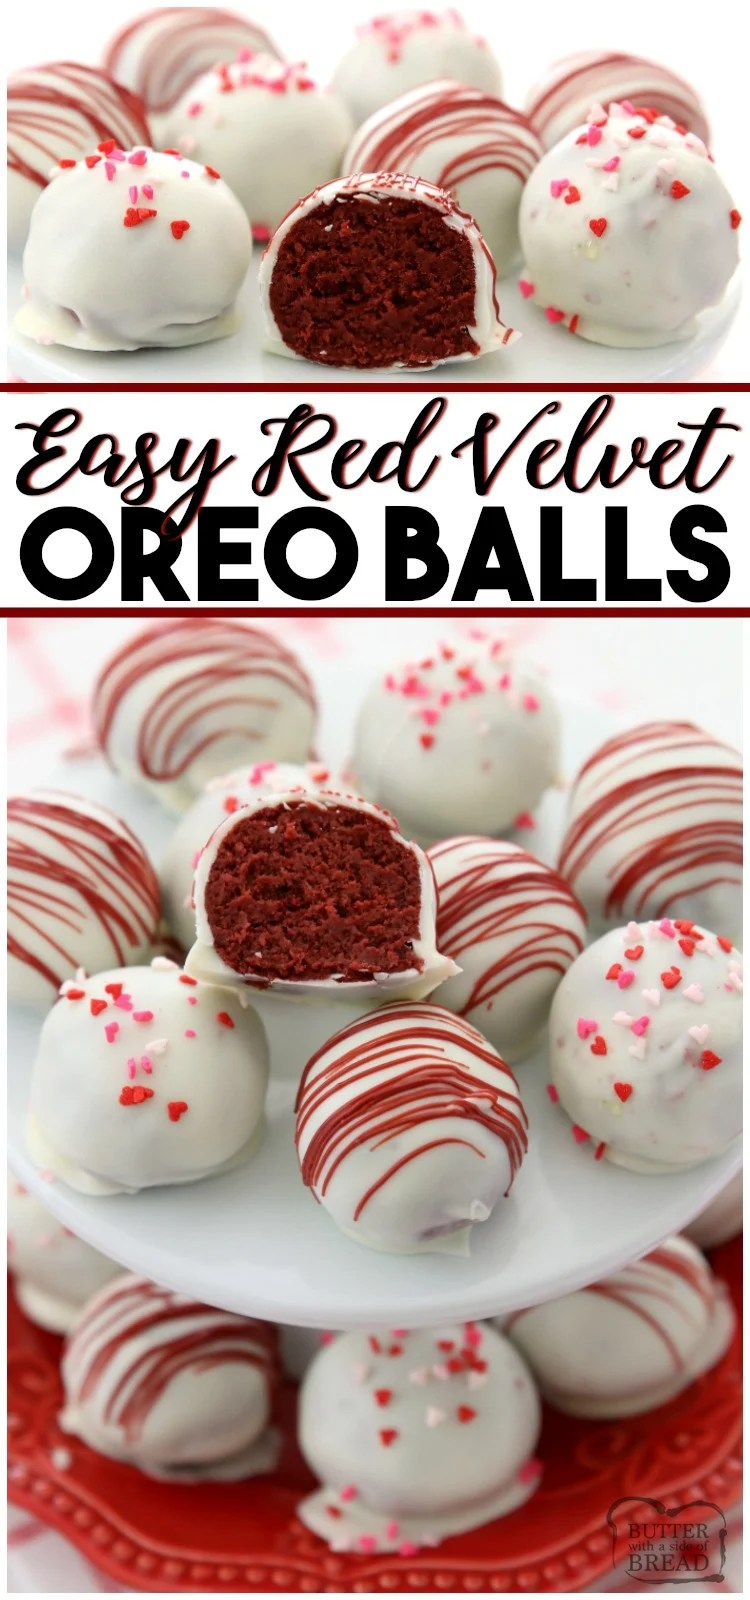 Red Velvet Oreo Balls made with just 3 ingredients & perfect for Valentine's Day! Made in minutes and so delicious, no one can guess they're made with Oreo cookies! #redvelvet #oreo #truffles #candy #chocolate #ValentinesDay #dessert #recipe from BUTTER WITH A SIDE OF BREAD